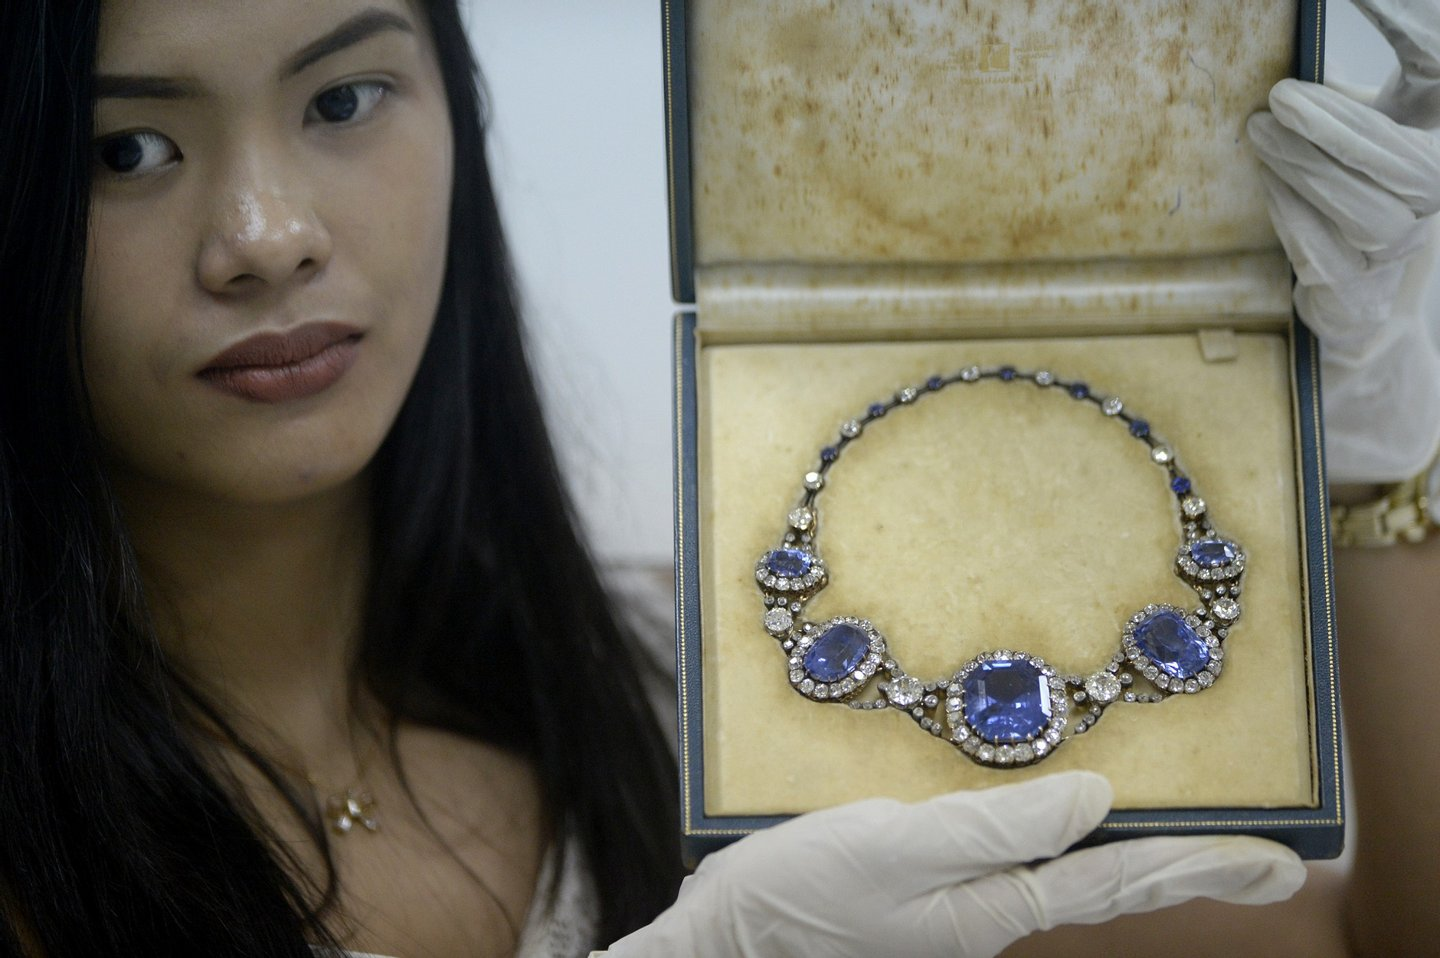 An official from the Presidential Commission on Good Government (PCGG) shows a piece of jewellery seized by the Philippine government from former first lady Imelda Marcos, at the Central Bank headquarters in Manila on November 27, 2015. Philippine authorities had the dazzling collection appraised by auction houses for a second day, ahead of a possible sale. AFP PHOTO / NOEL CELIS / AFP / NOEL CELIS (Photo credit should read NOEL CELIS/AFP/Getty Images)